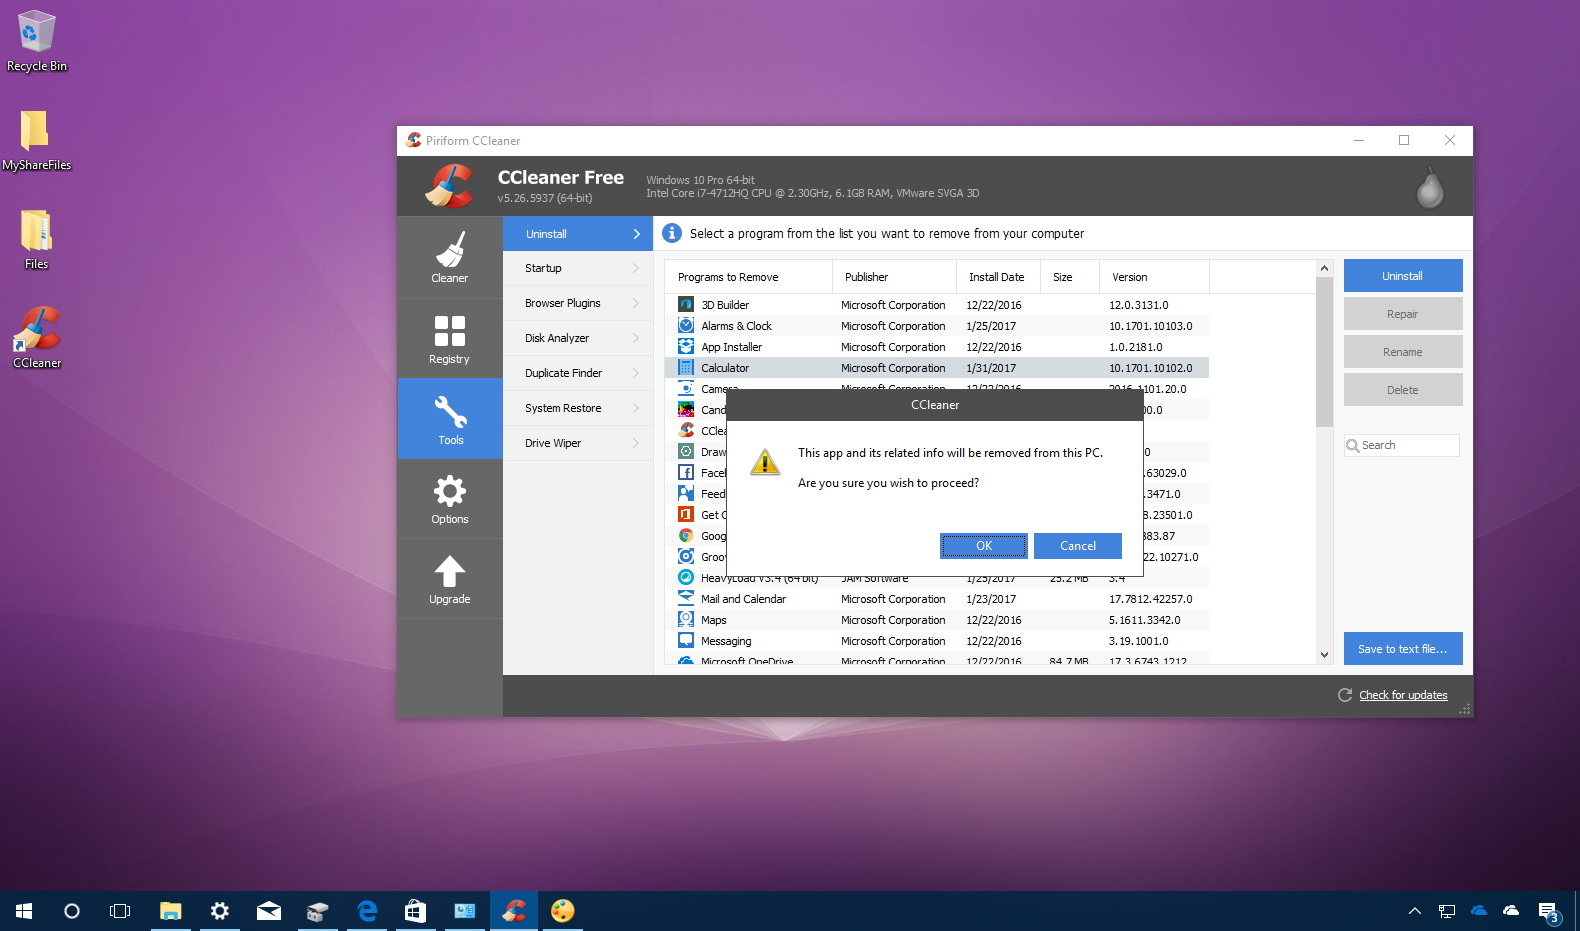 Uninstall Windows 10 apps using CCleaner